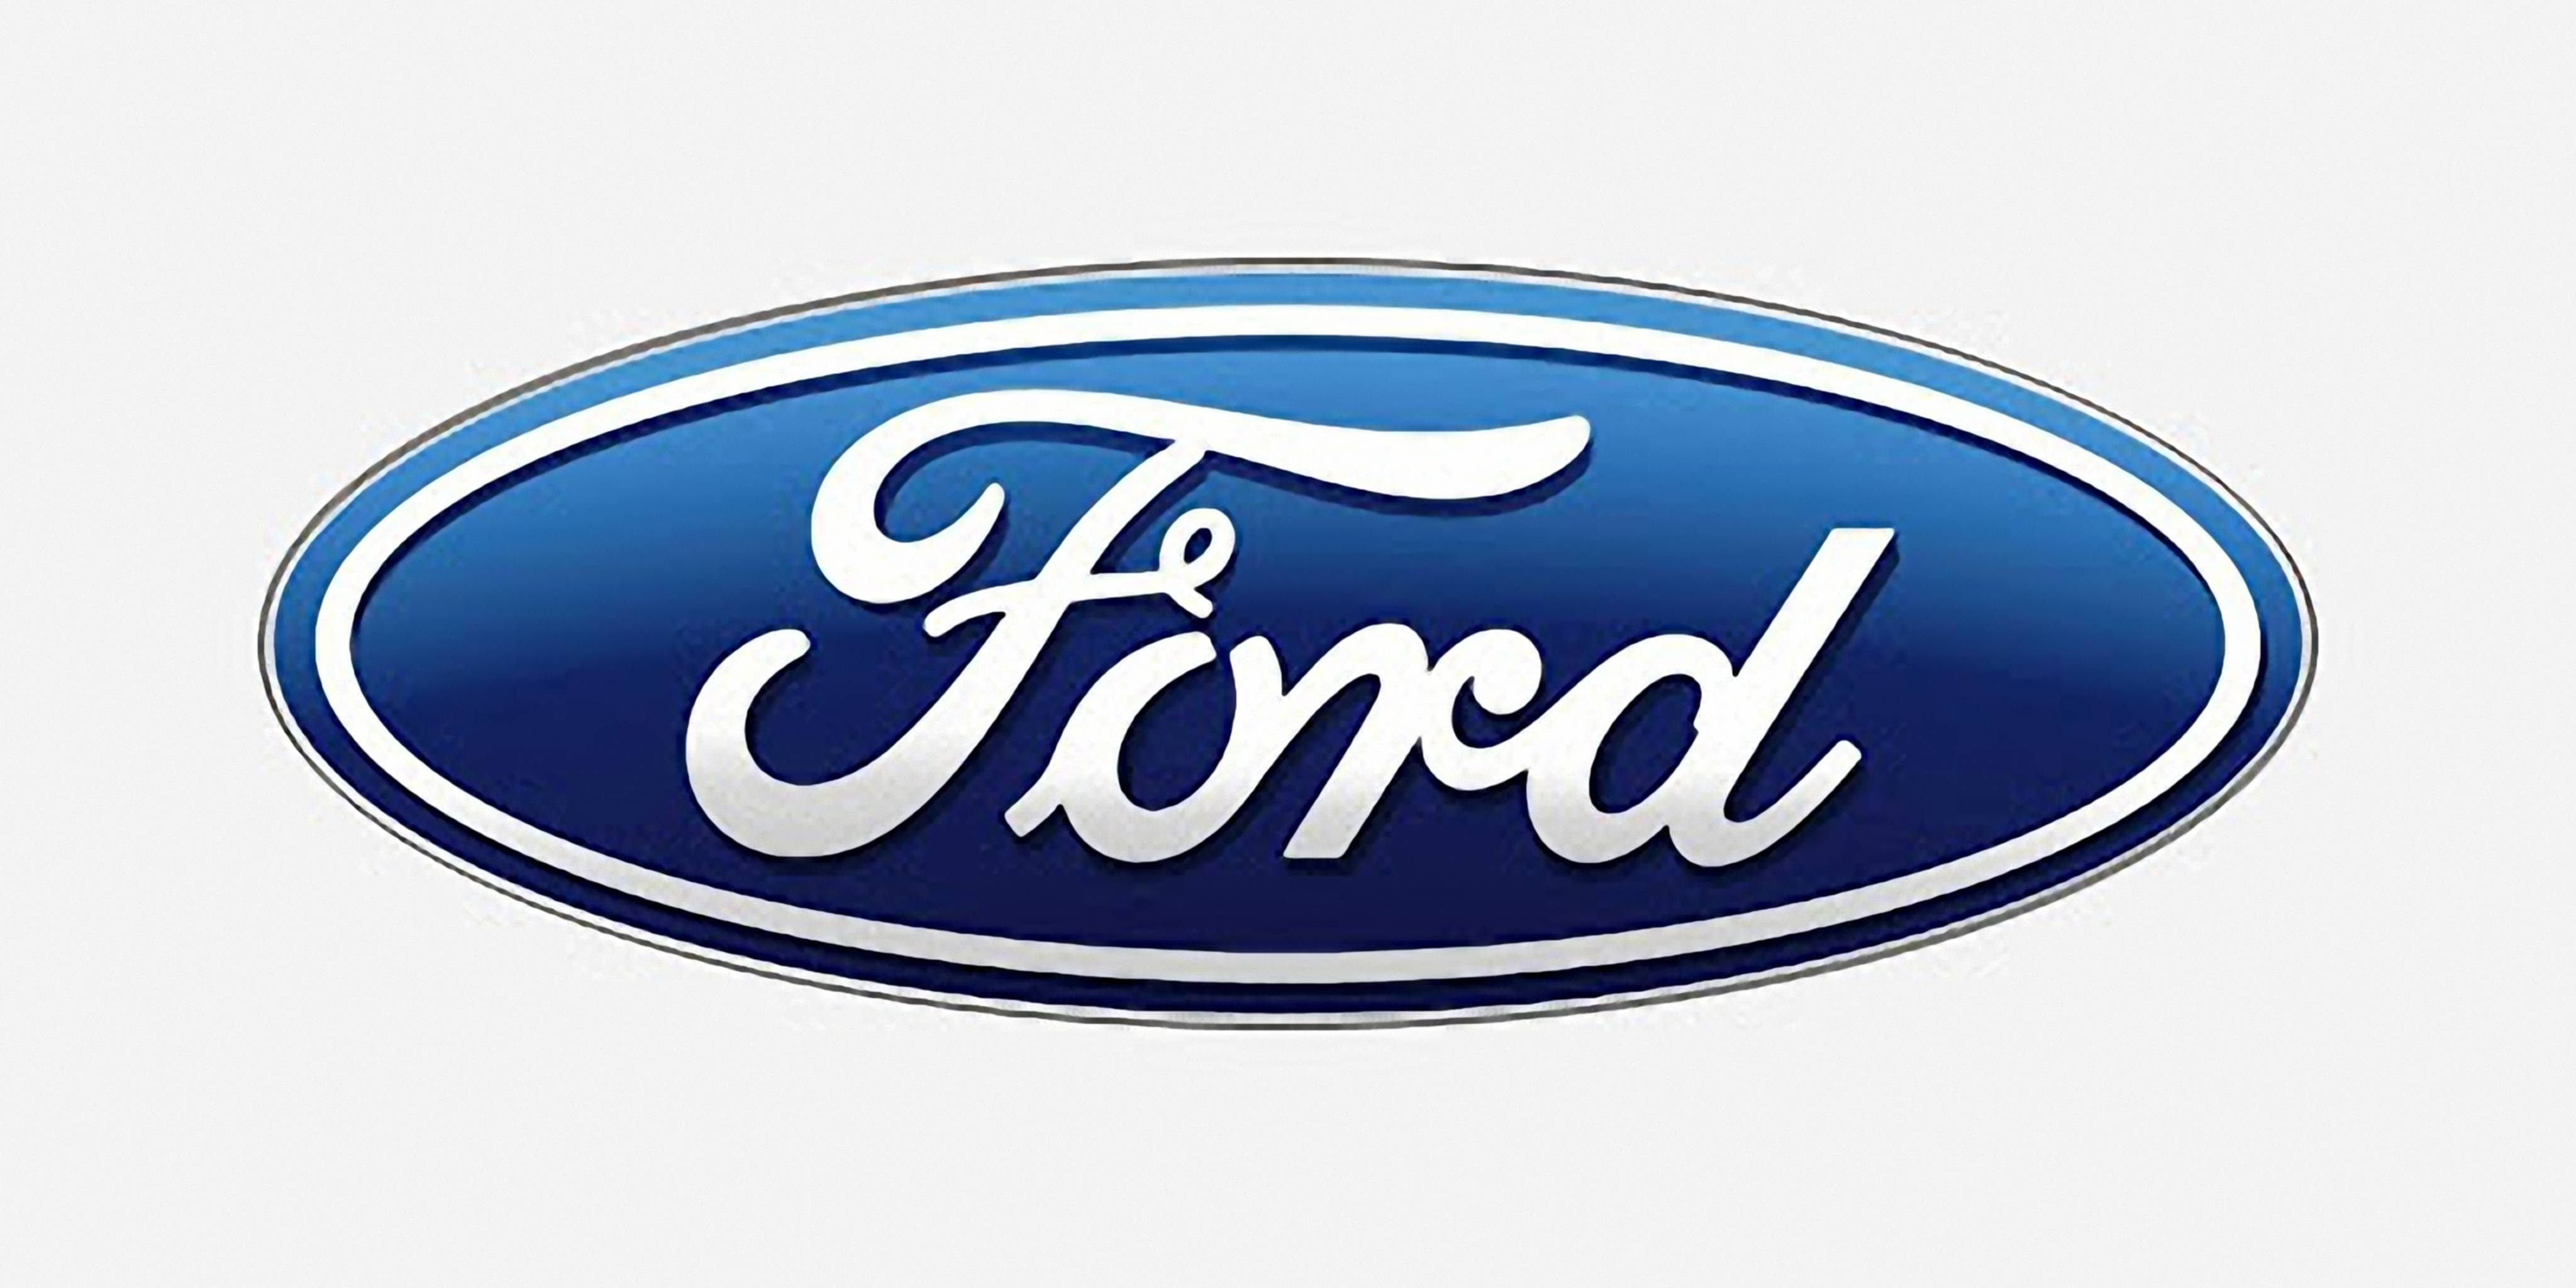 Ford logo wallpapers wallpaper cave ford logo free wallpapers widescreen ardiwallpaper voltagebd Images